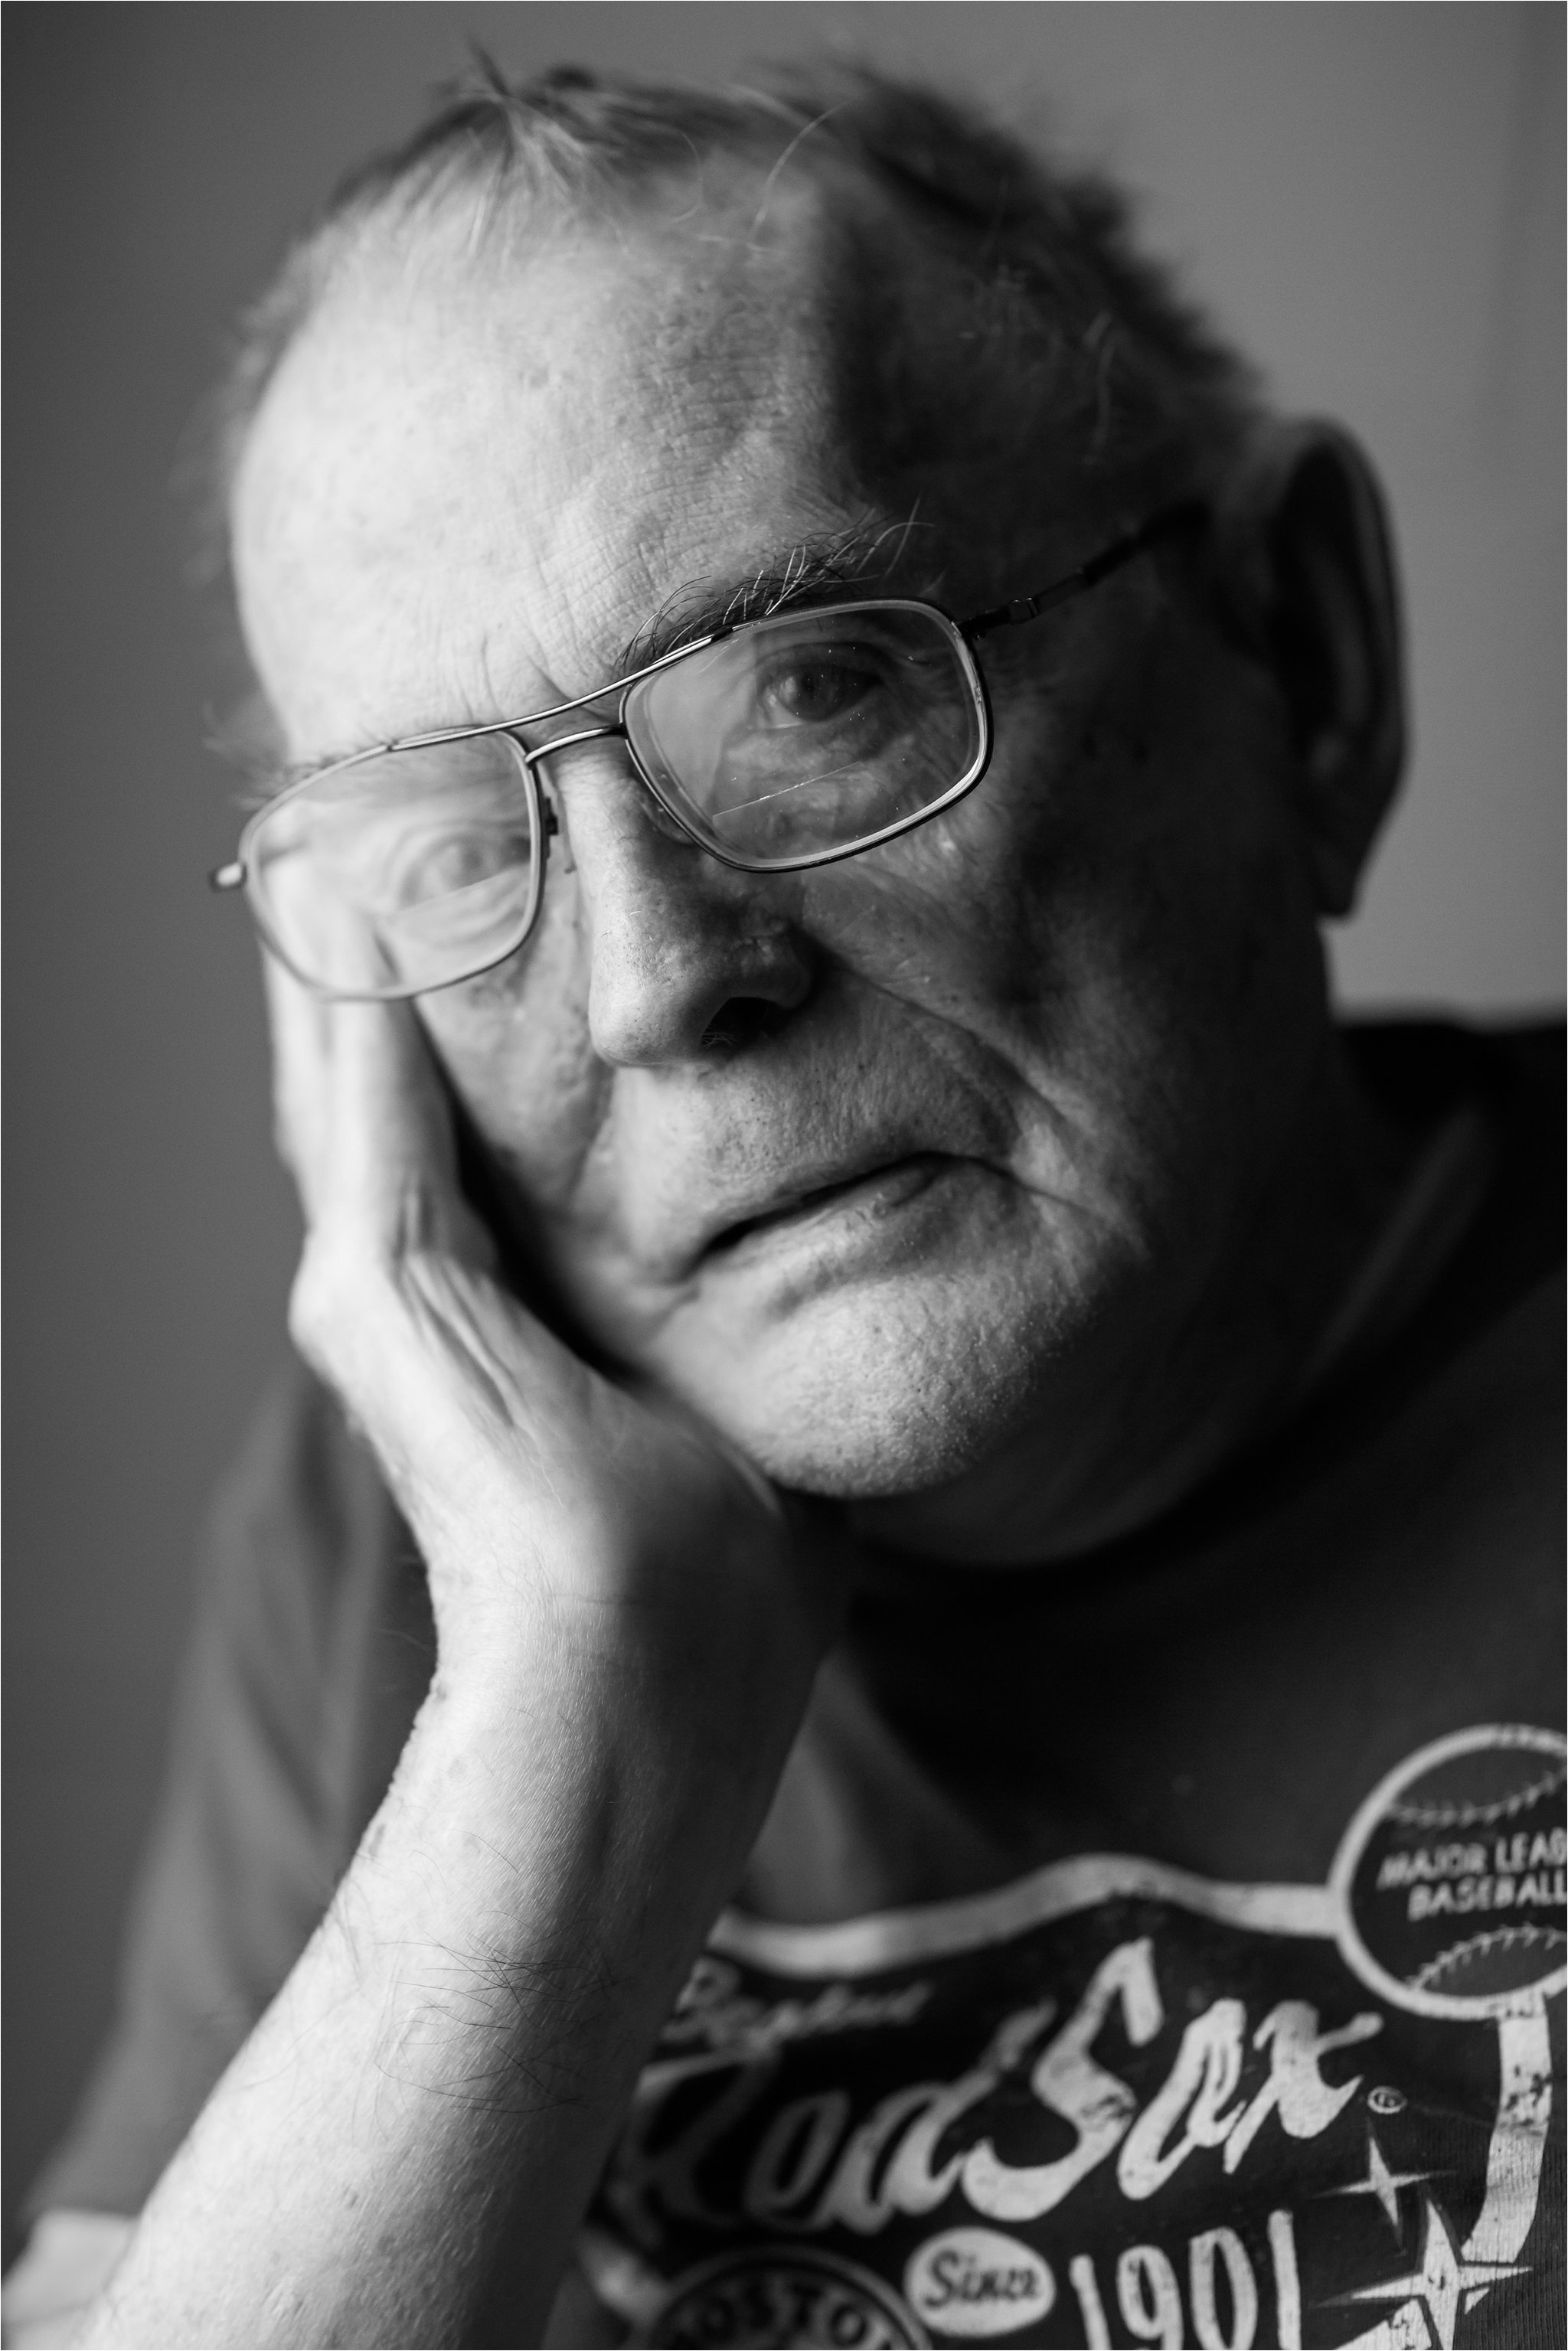 Black and White Portrait of Elderly Man Wearing Red Sox Shirt 2